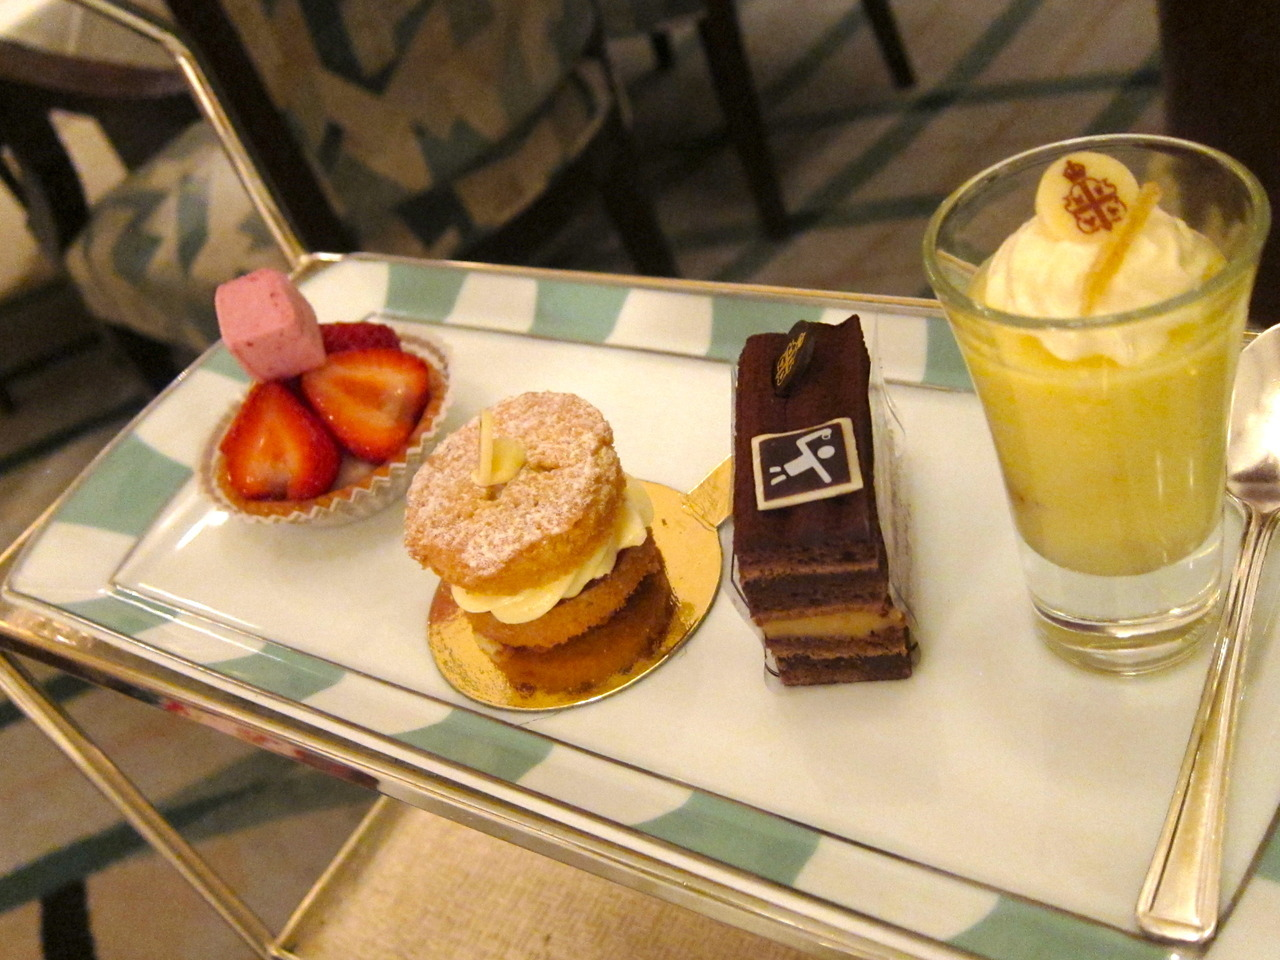 Cakes and pastries from our British afternoon tea at Claridges